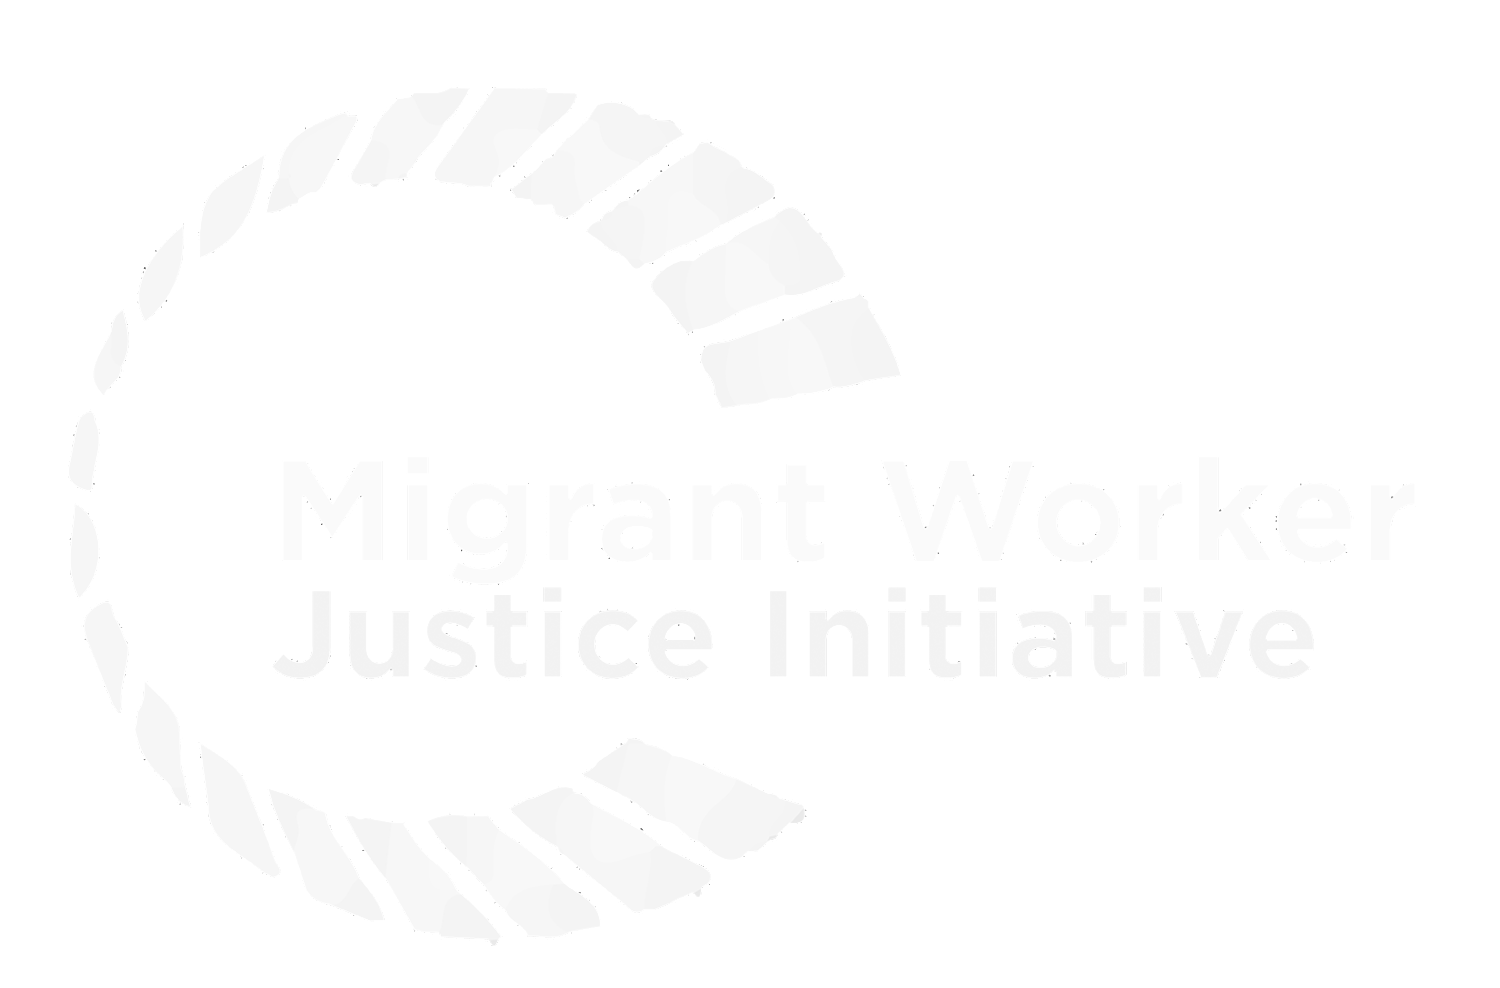 Migrant Worker Justice Initiative